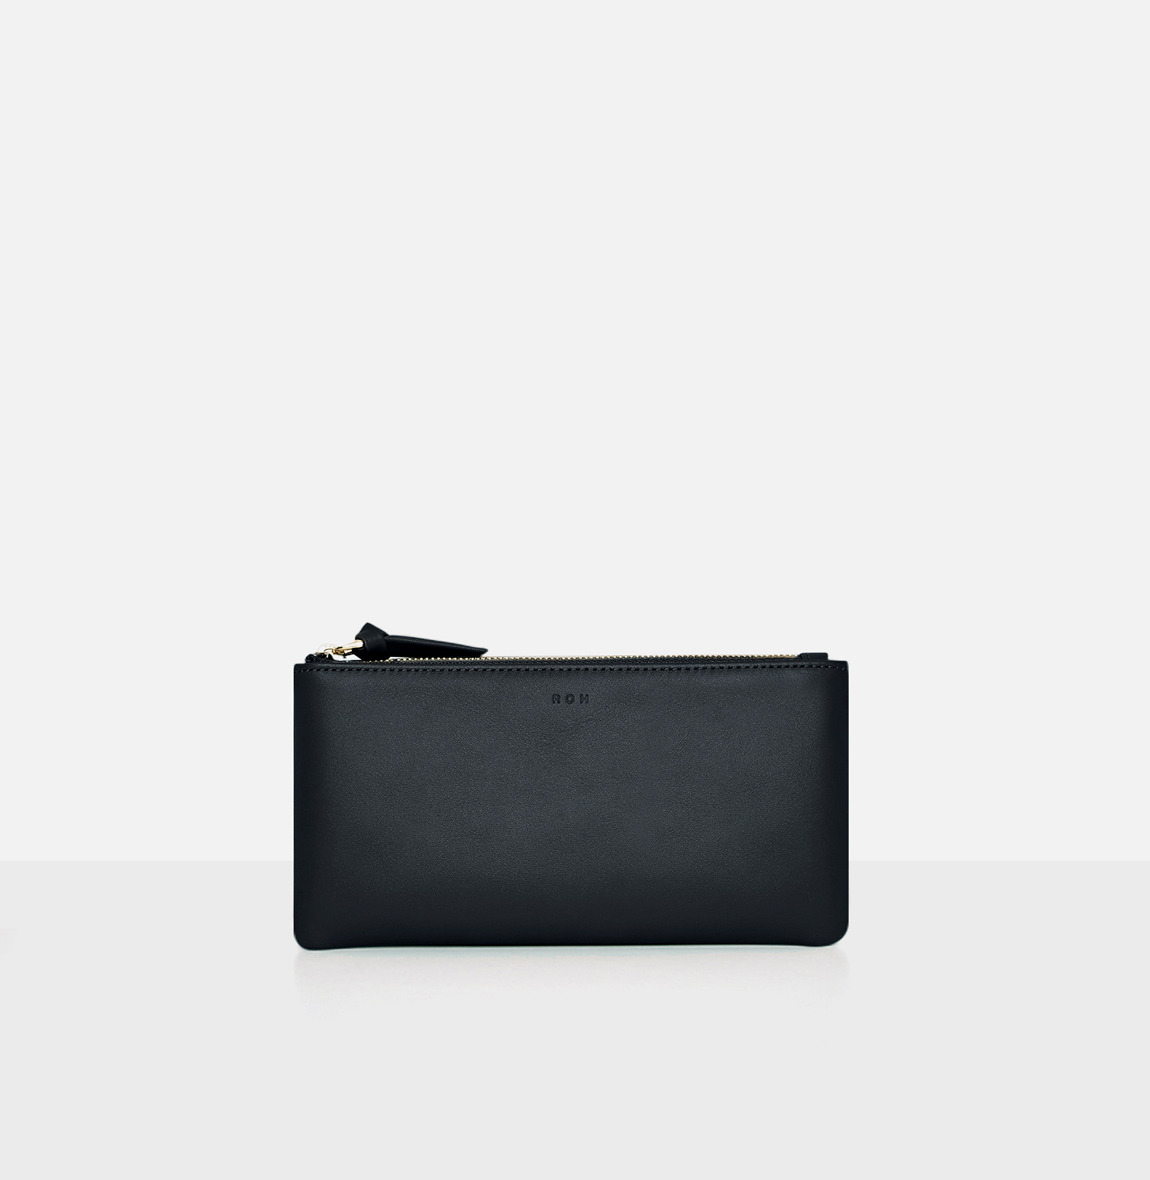 Square large zip wallet Viridian